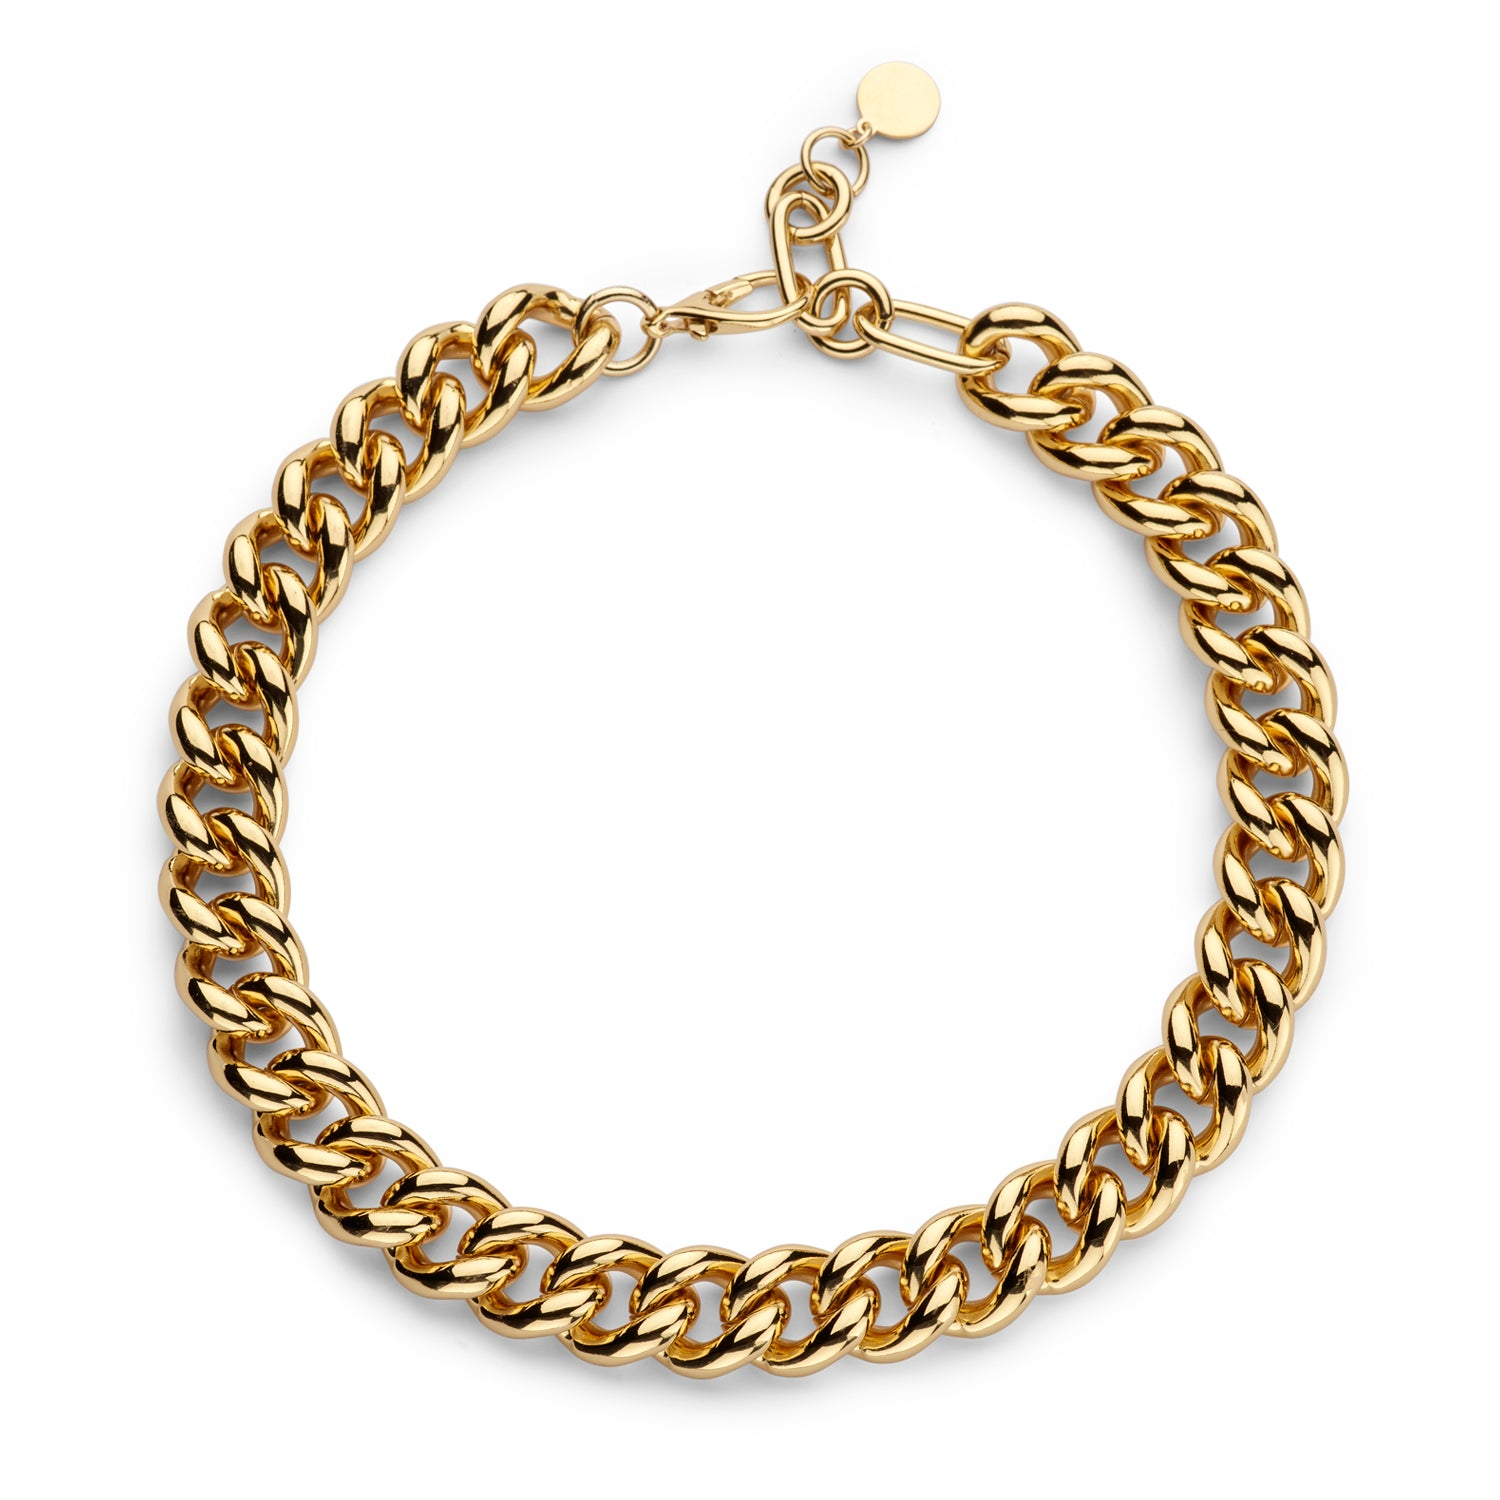 Gourmet small chain necklace gold - Souvenirs de Pomme